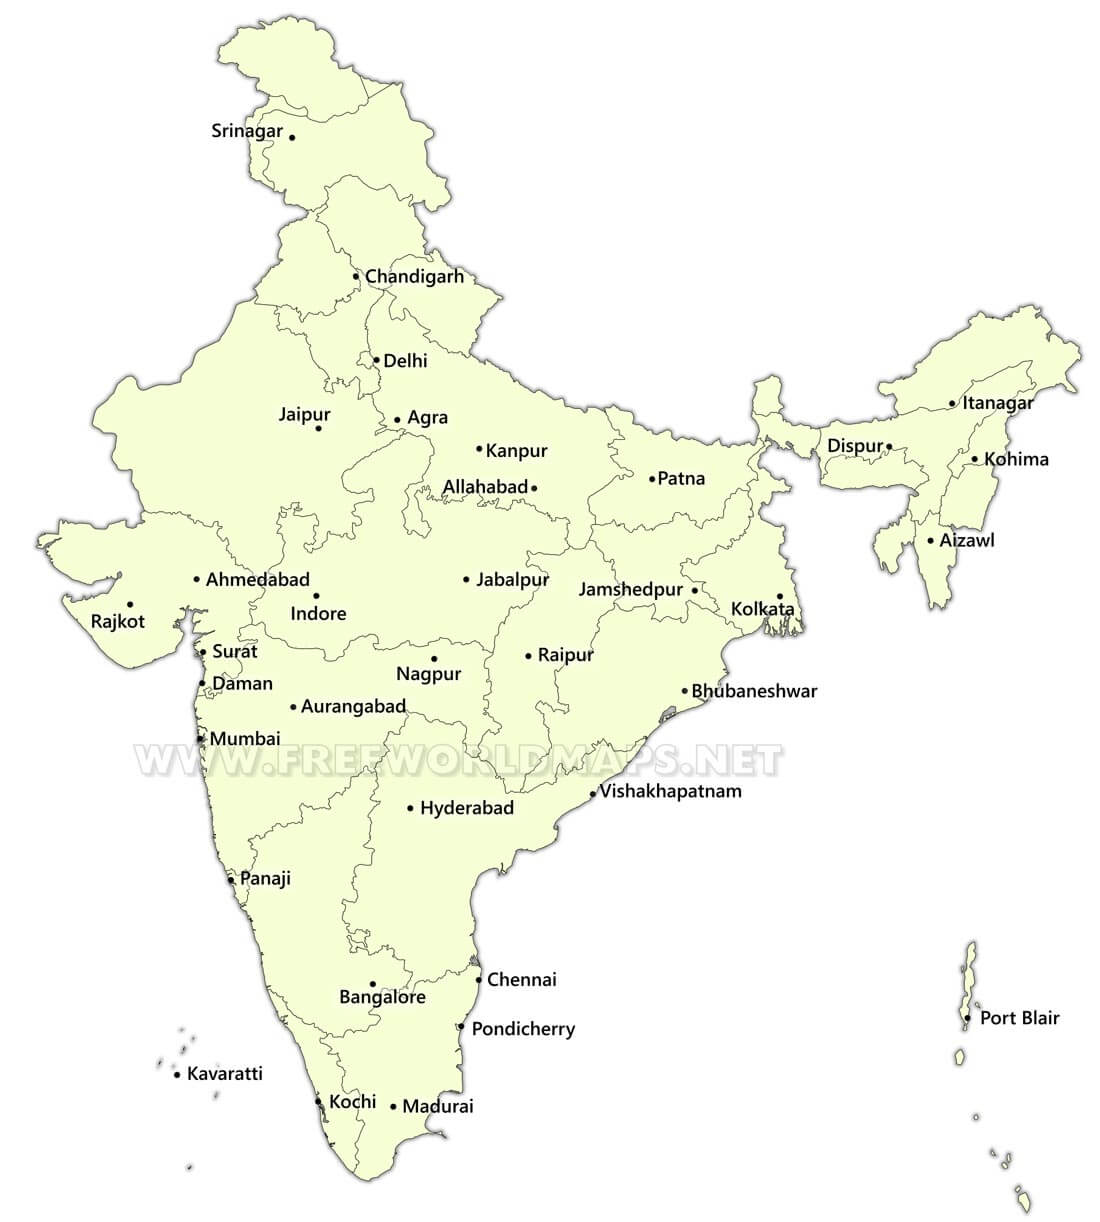 Marvelous India States Map   Showing The Administrative Divisions Of India India  Cities